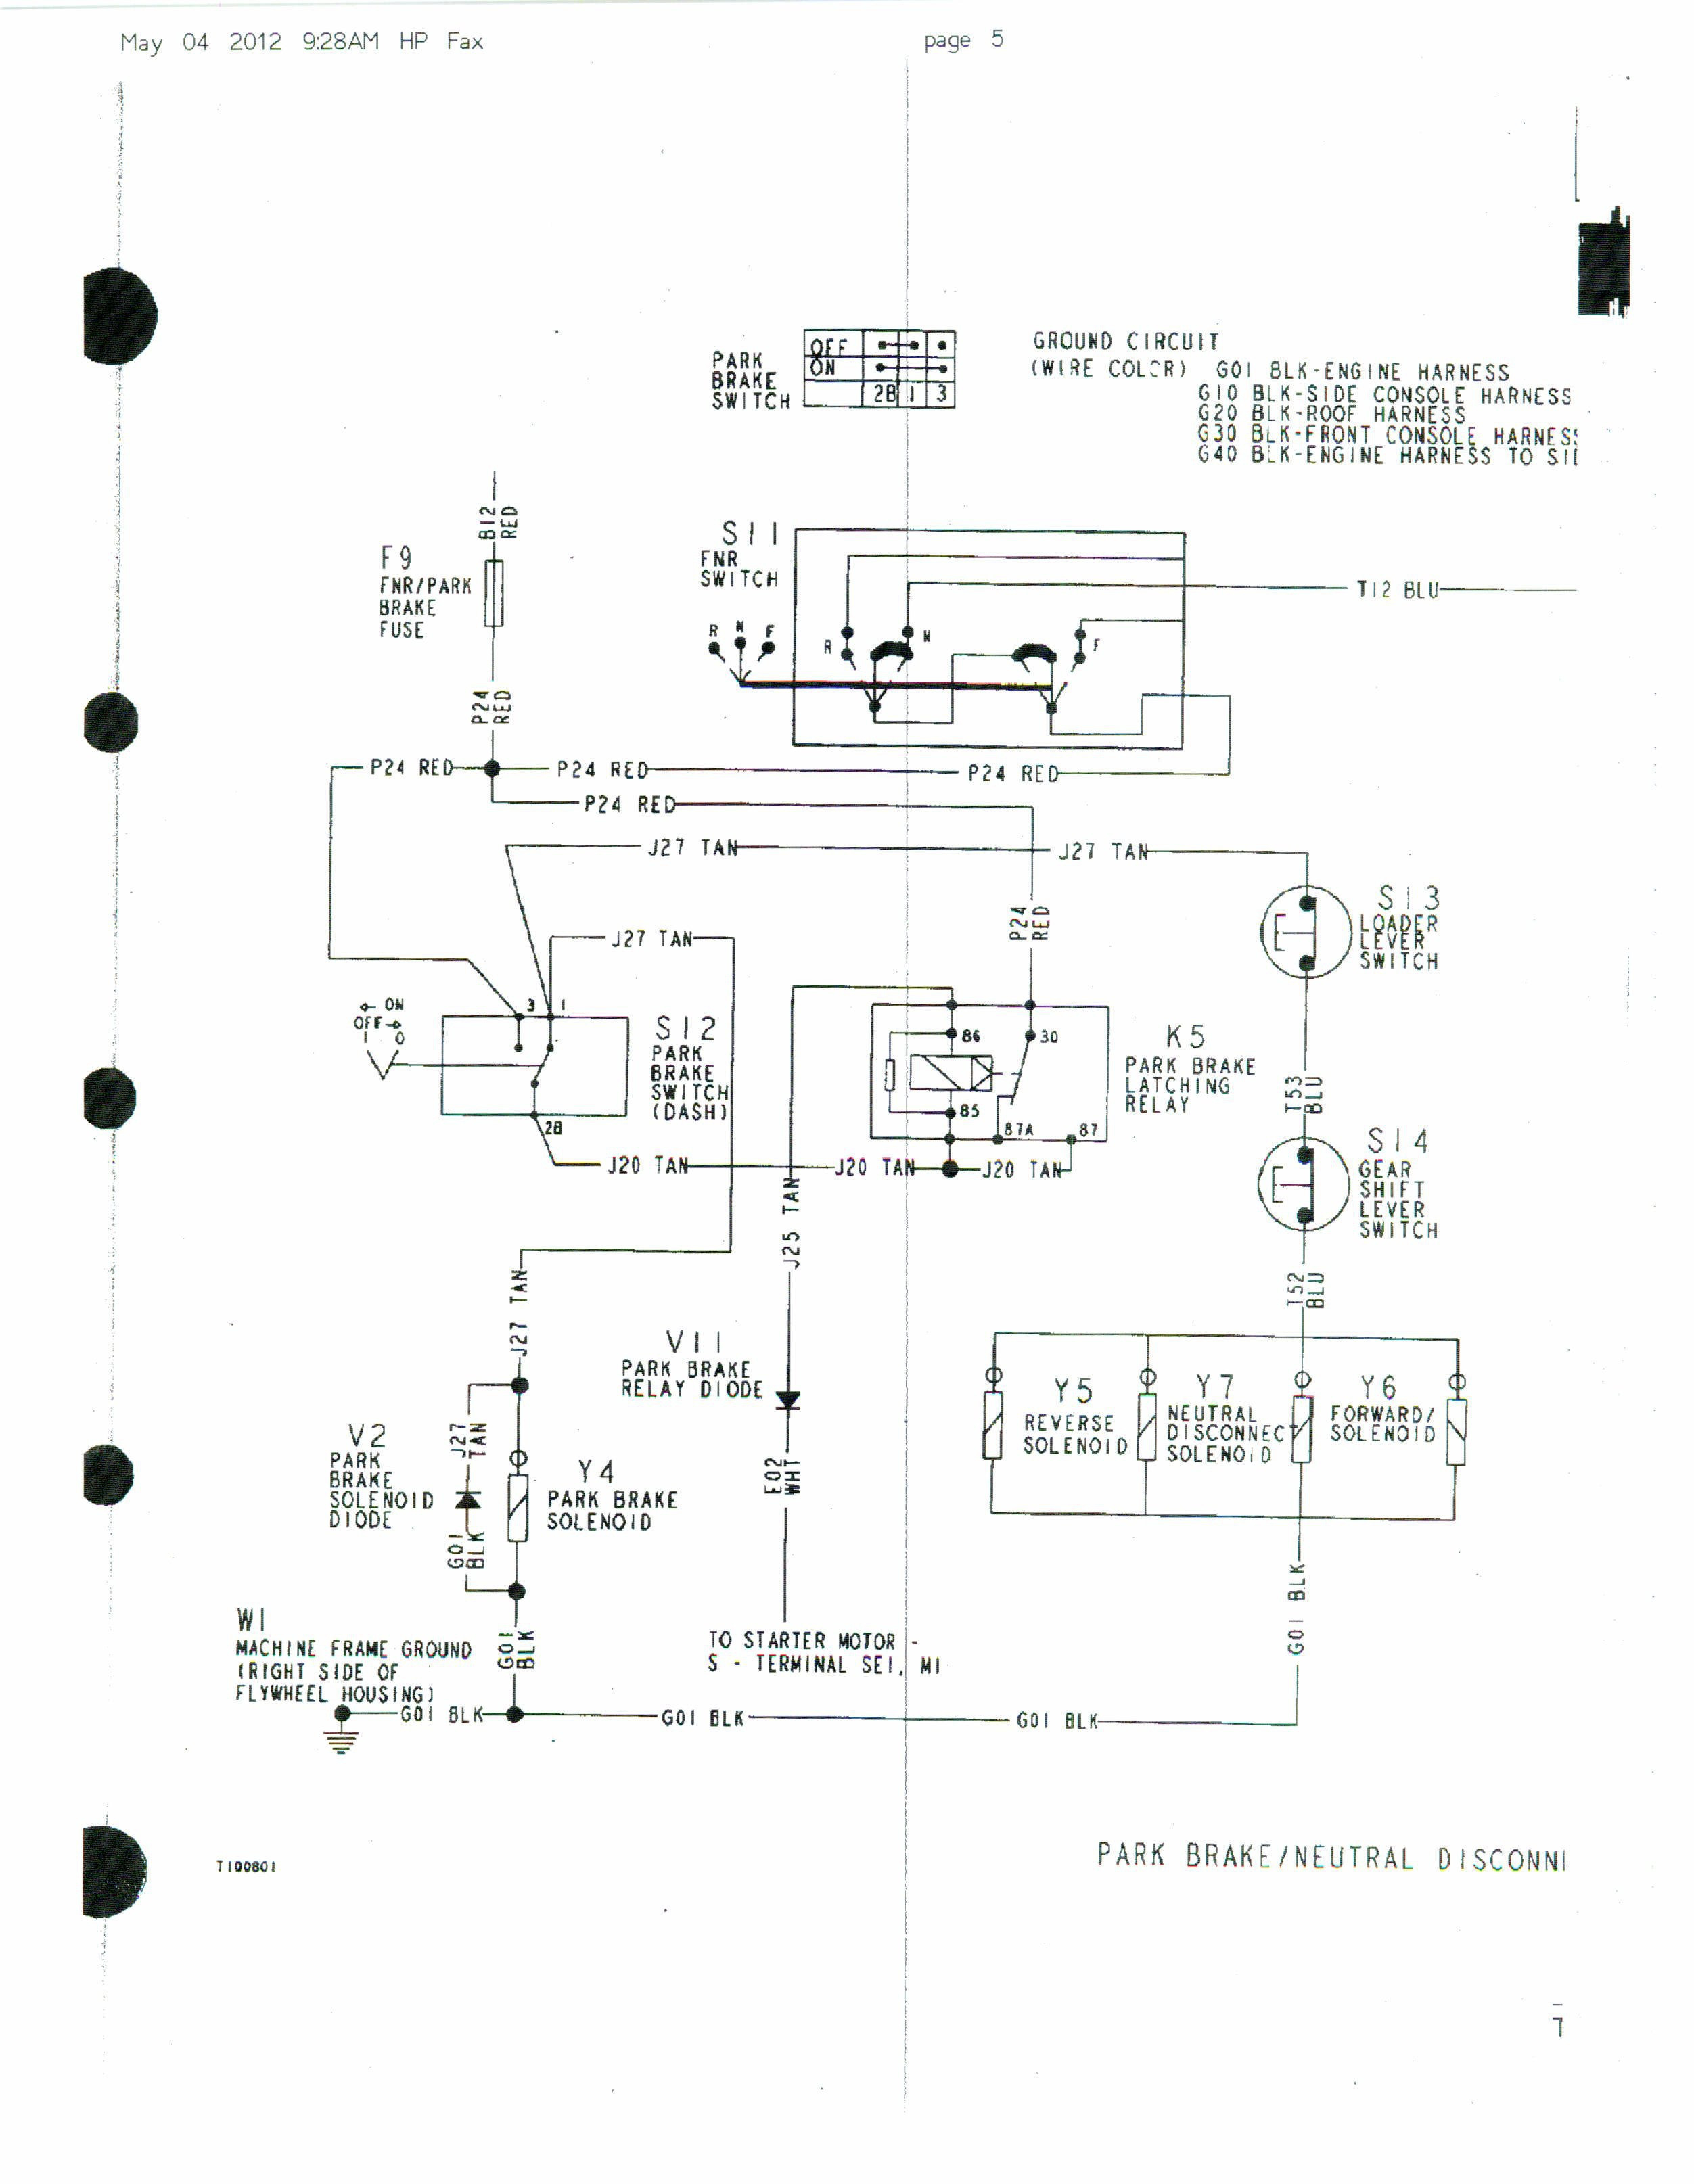 Ups Bypass Circuit Diagram Just Another Wiring Blog Electrical Schematic For Maintenance Switch Download Rh Worldvisionsummerfest Com Drawing